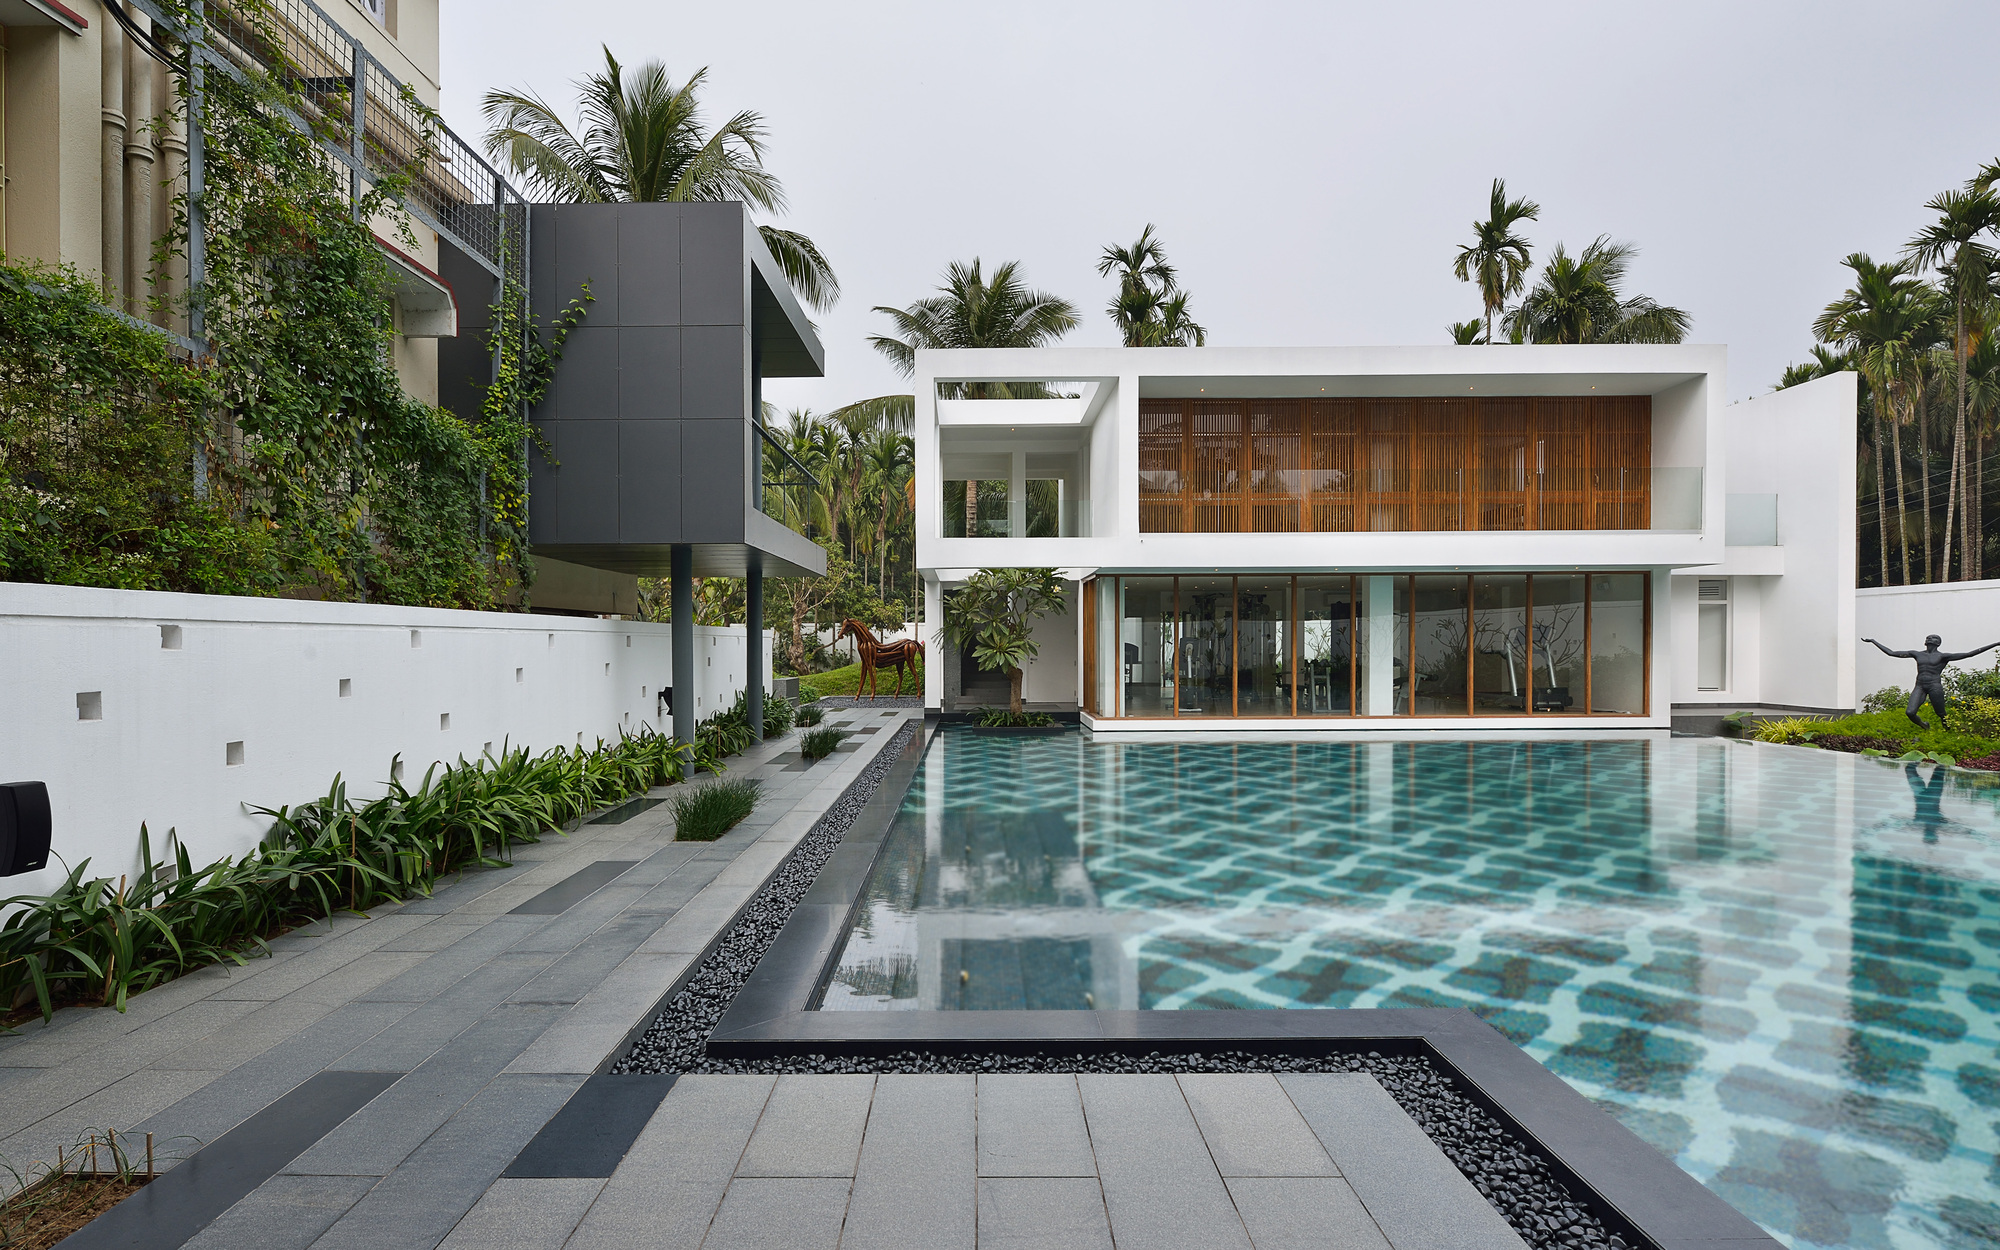 Pool house abin design studio archdaily for Pool design studio